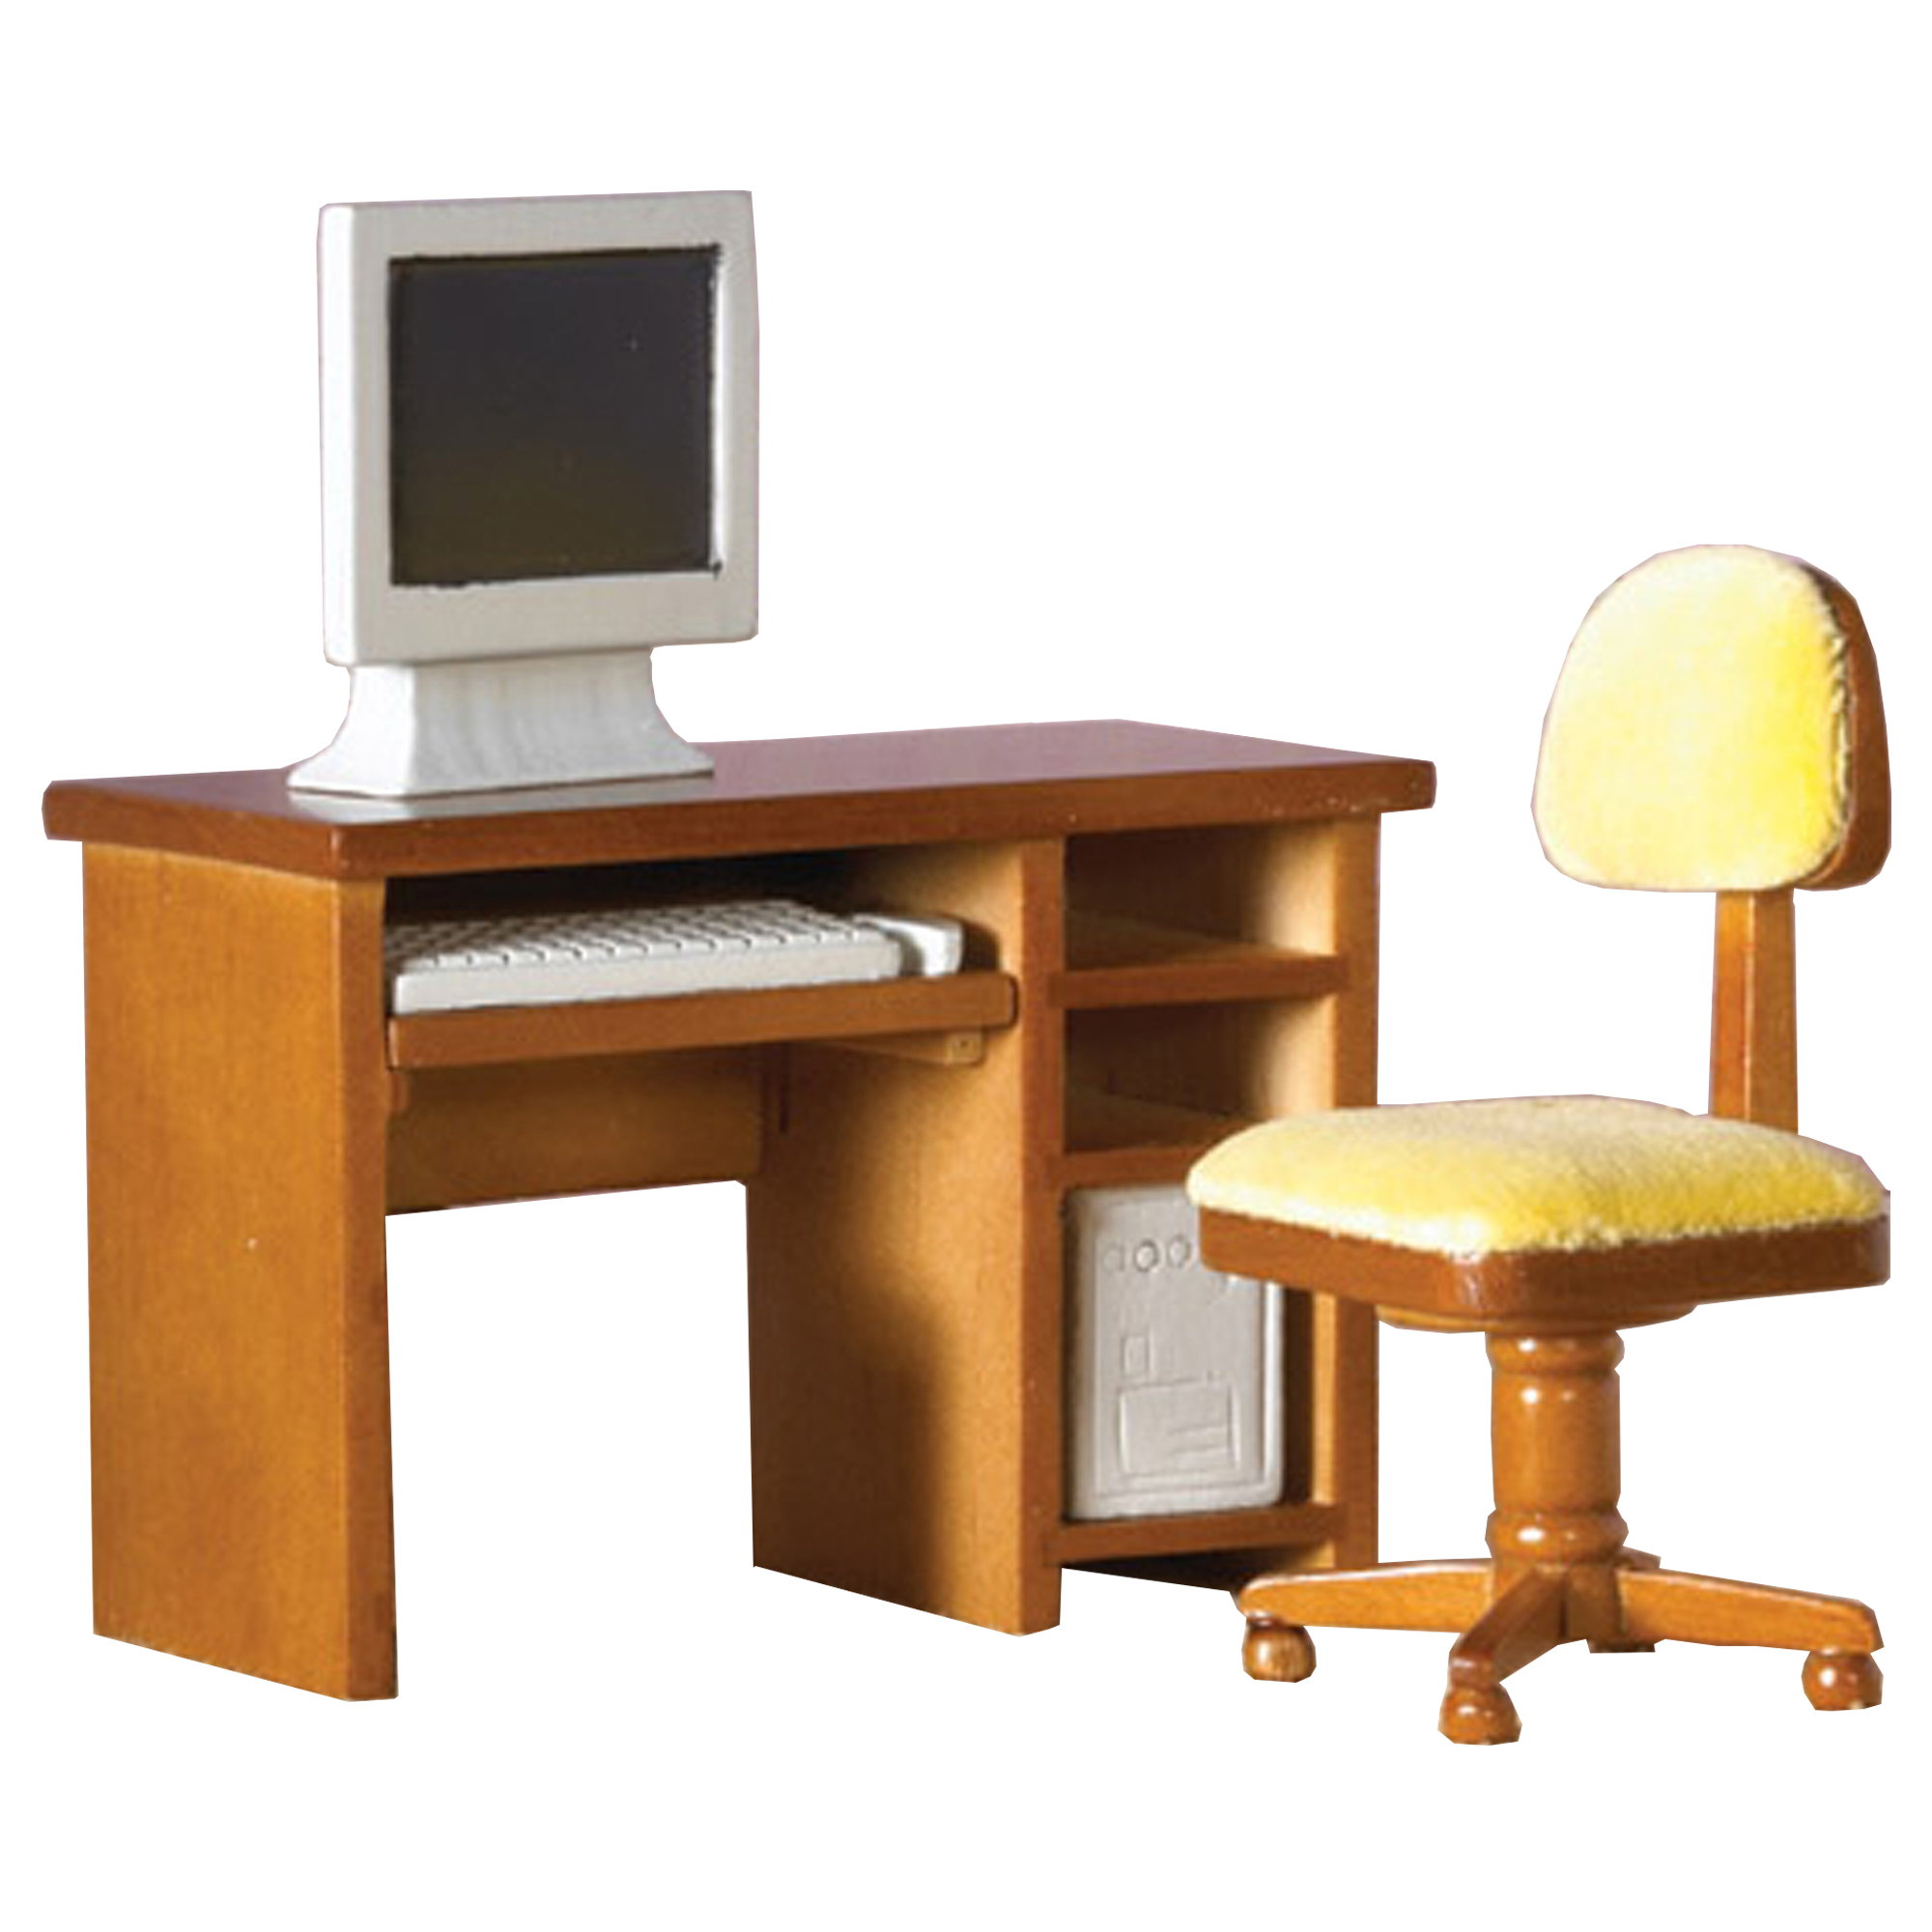 home office set from the dolls house emporium includes a desk chair